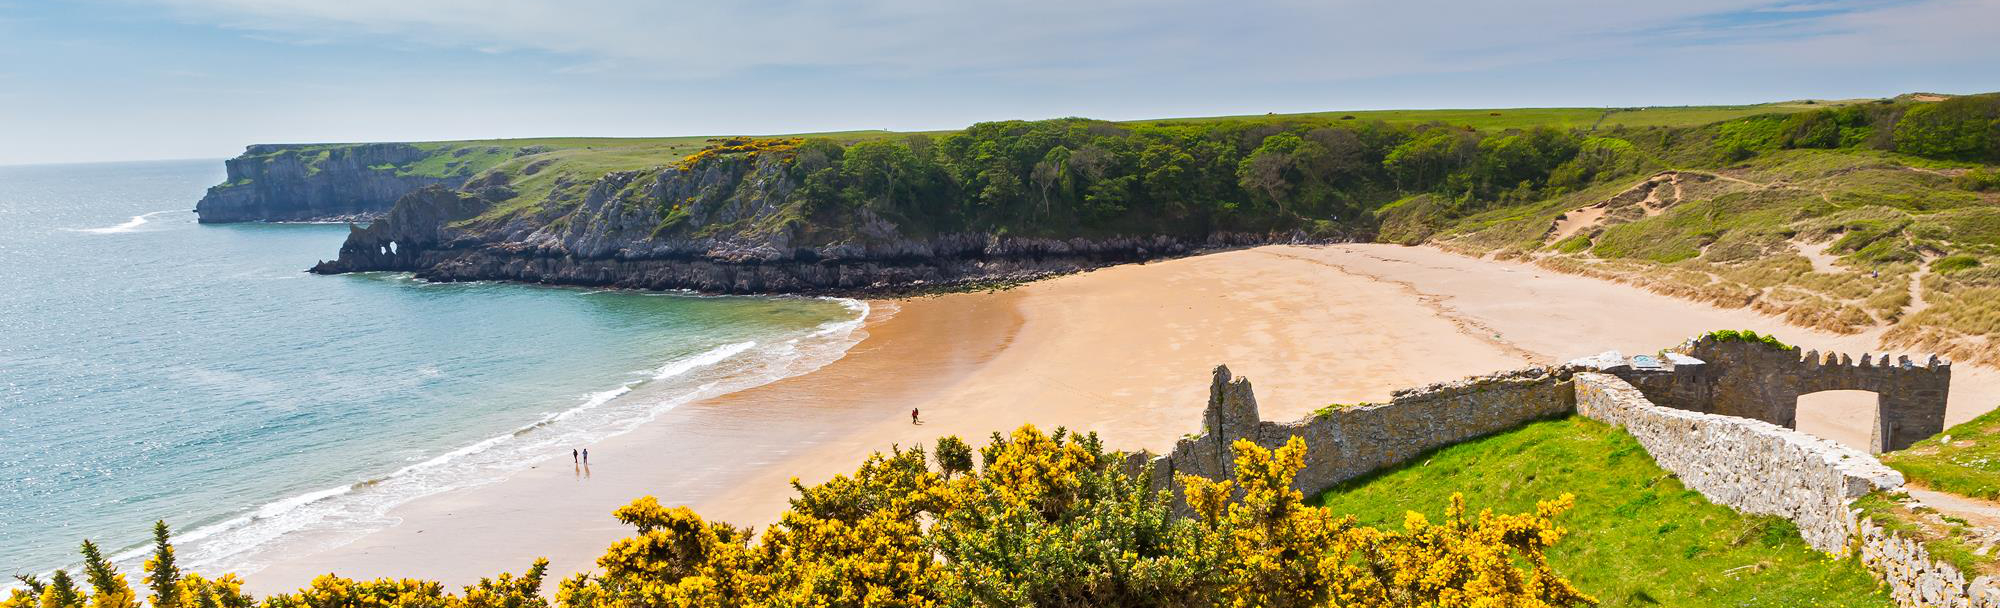 Barafundle Bay on the Pembrokeshire coast